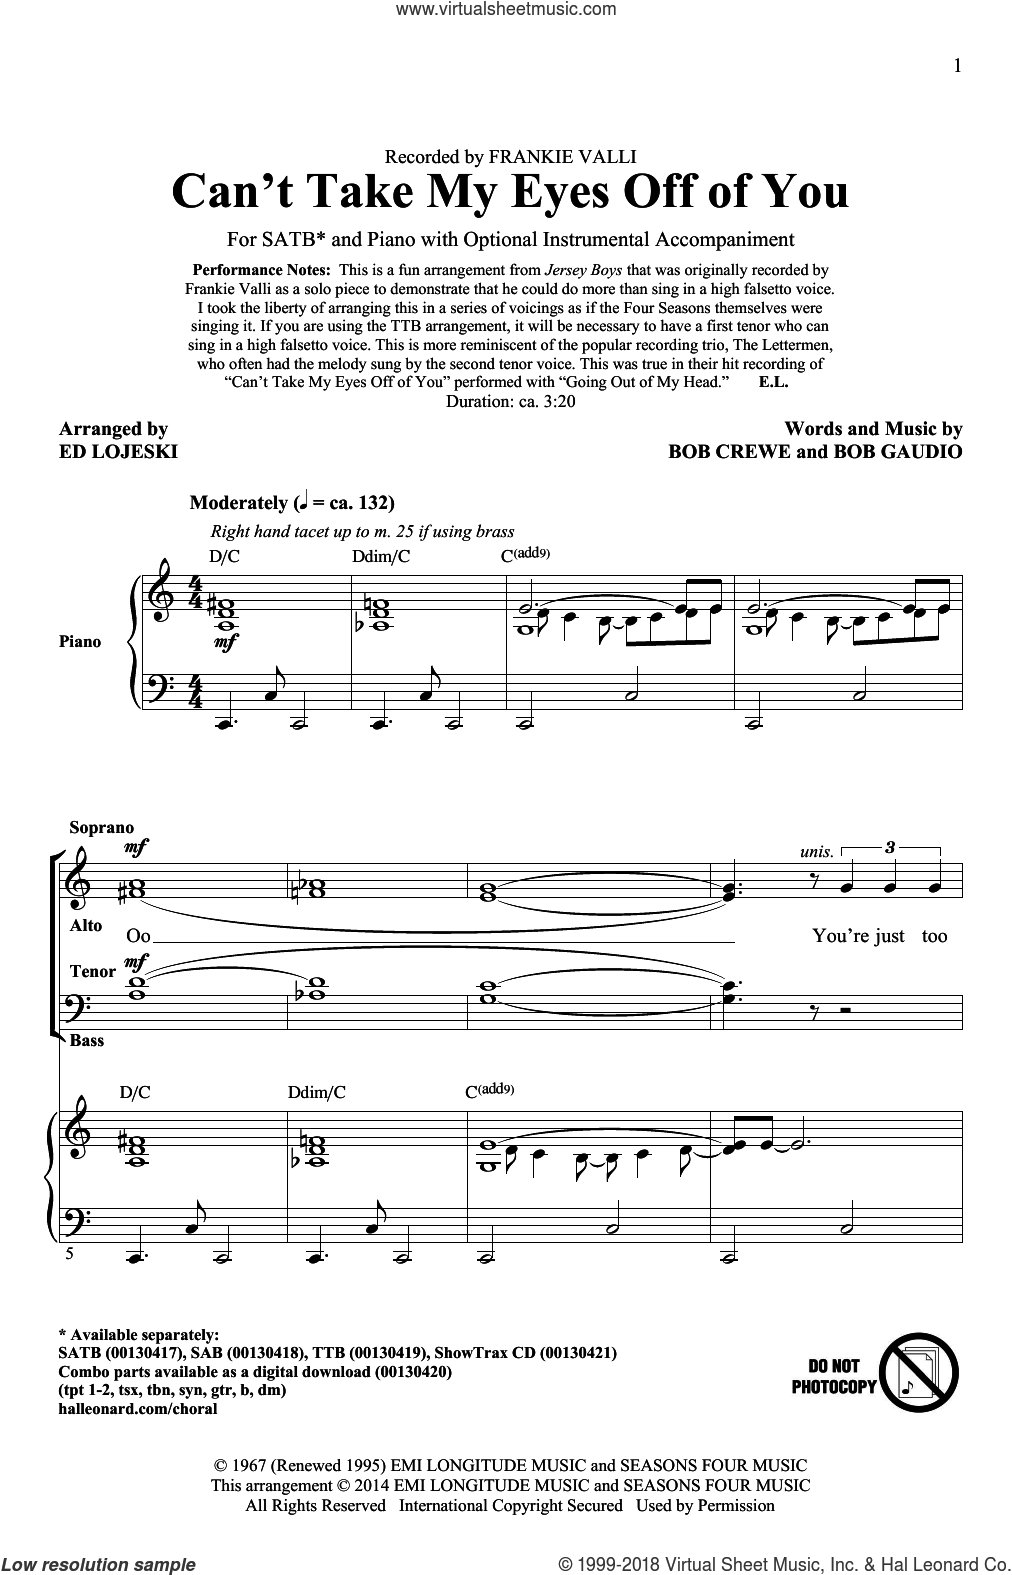 Can't Take My Eyes Off Of You (from Jersey Boys) (arr. Ed Lojeski) sheet music for choir (SATB: soprano, alto, tenor, bass) by Bob Crewe, Ed Lojeski, Frankie Valli, Frankie Valli & The Four Seasons, The Four Seasons and Bob Gaudio, intermediate skill level